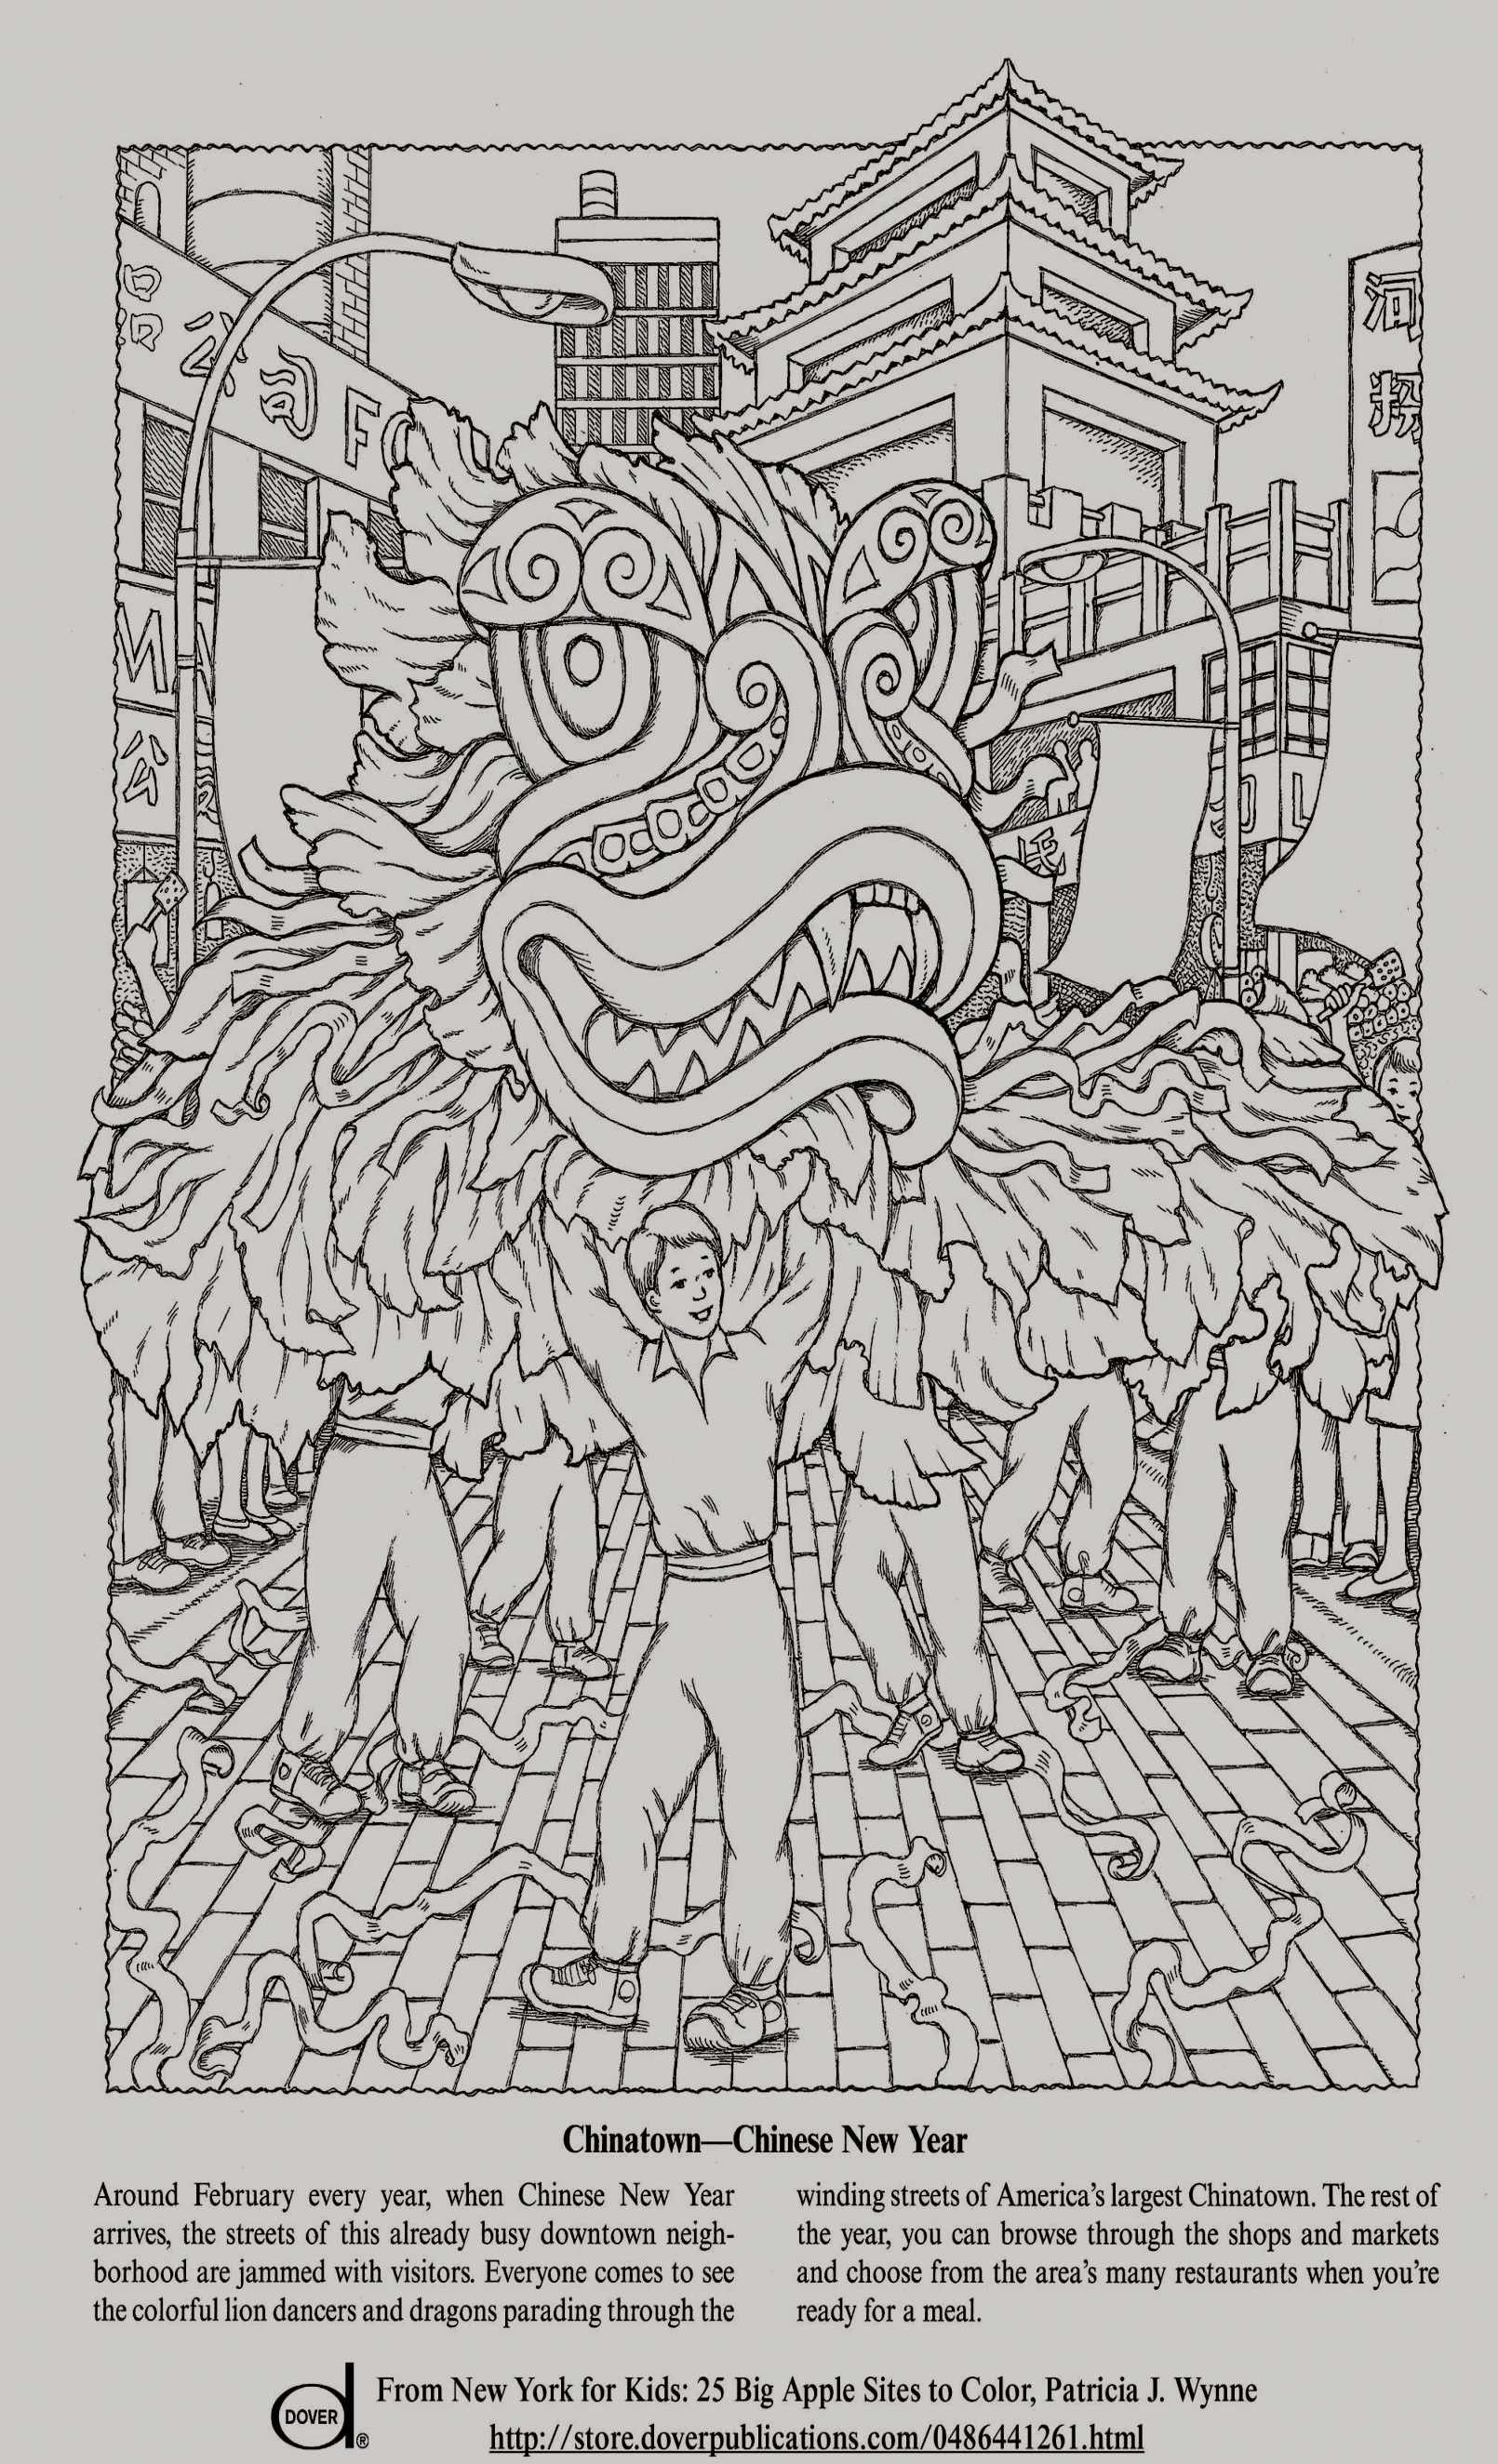 Chinese Dragon Coloring Pages Fresh Best Coloring Pages Dragons Halloweencoloringpages Chine In 2020 Dance Coloring Pages Dragon Coloring Page New Year Coloring Pages